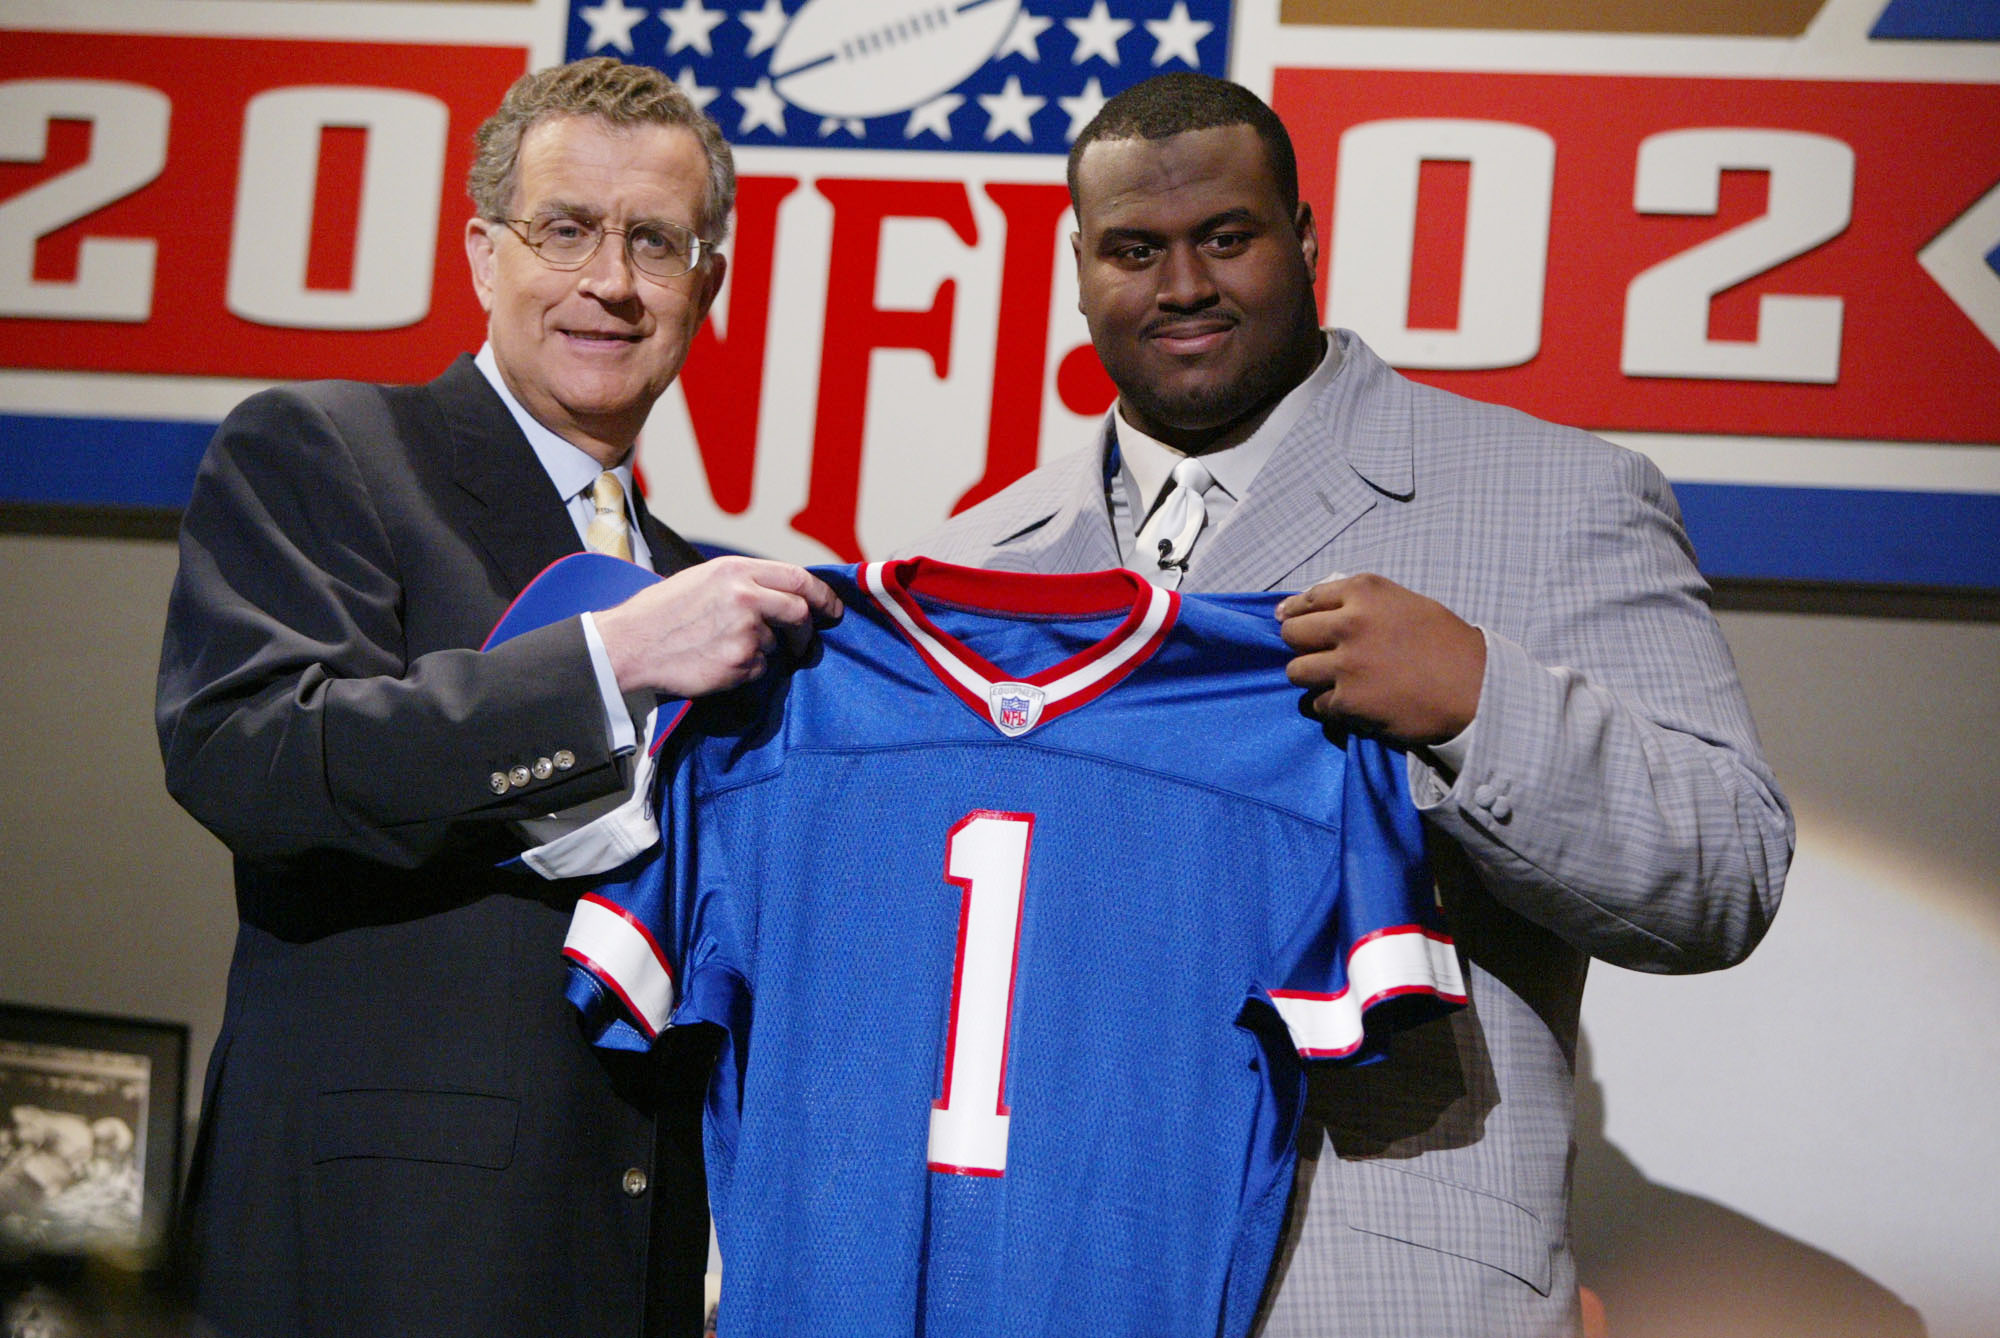 20 April 2002:  Mike Williams of Texas stands with NFL Commisioner Paul Tagliabue after being the fourth player selected in the 2002 NFL draft at the Theatre in Madison Square Garden in New York City, New York.   Digital Image.  Mandatory Credit: Al Bello